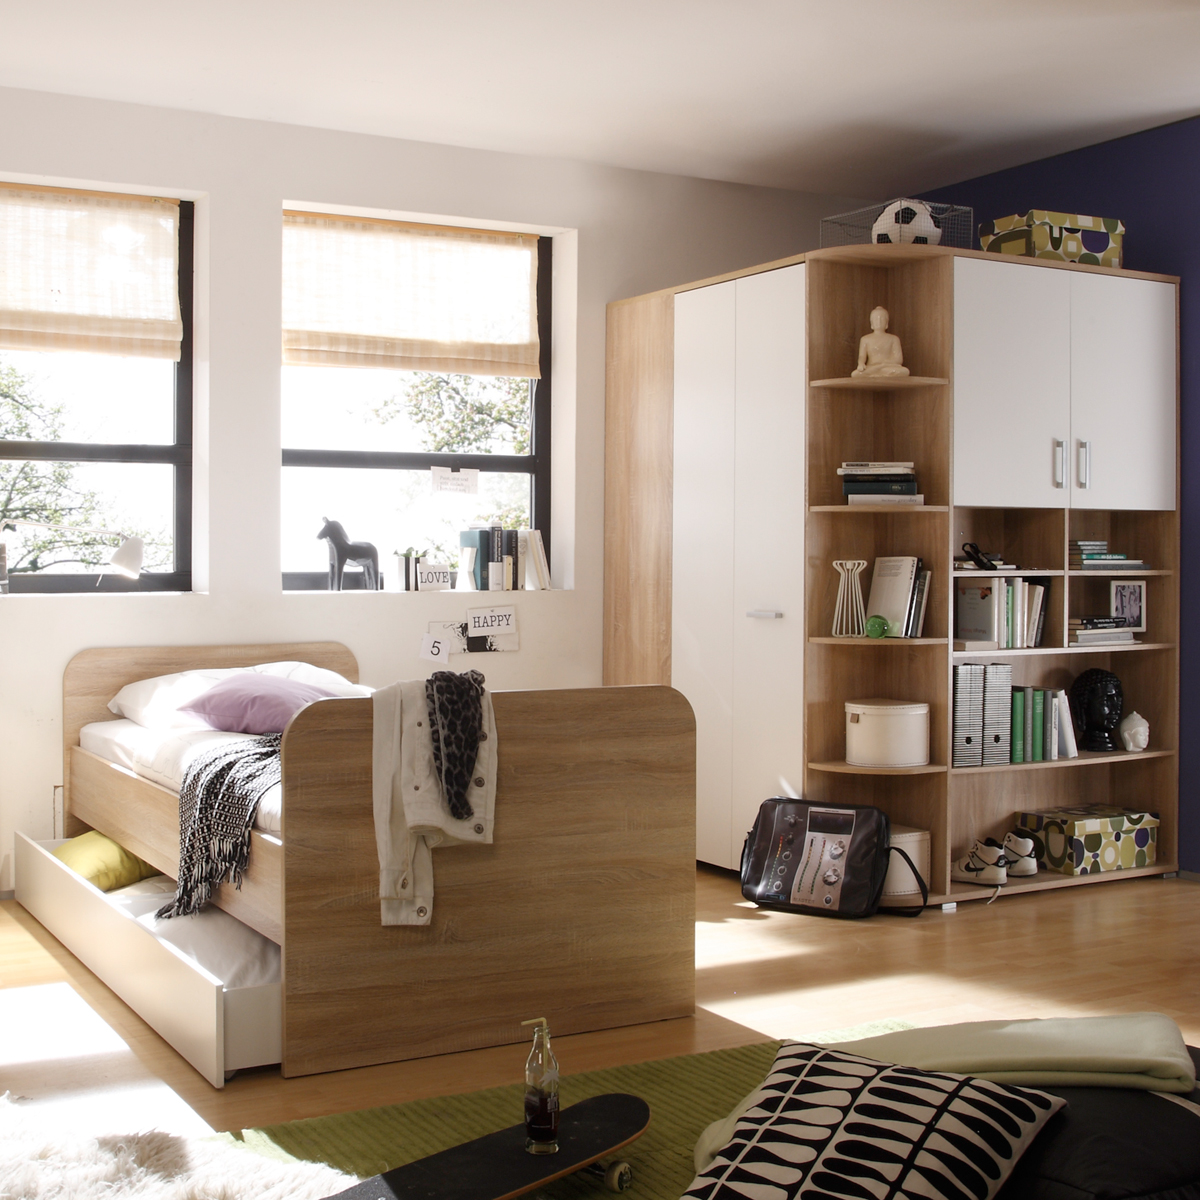 jugendzimmer 2 teilig corner eckkleiderschrank jugendbett 90x200 sonoma eiche ebay. Black Bedroom Furniture Sets. Home Design Ideas